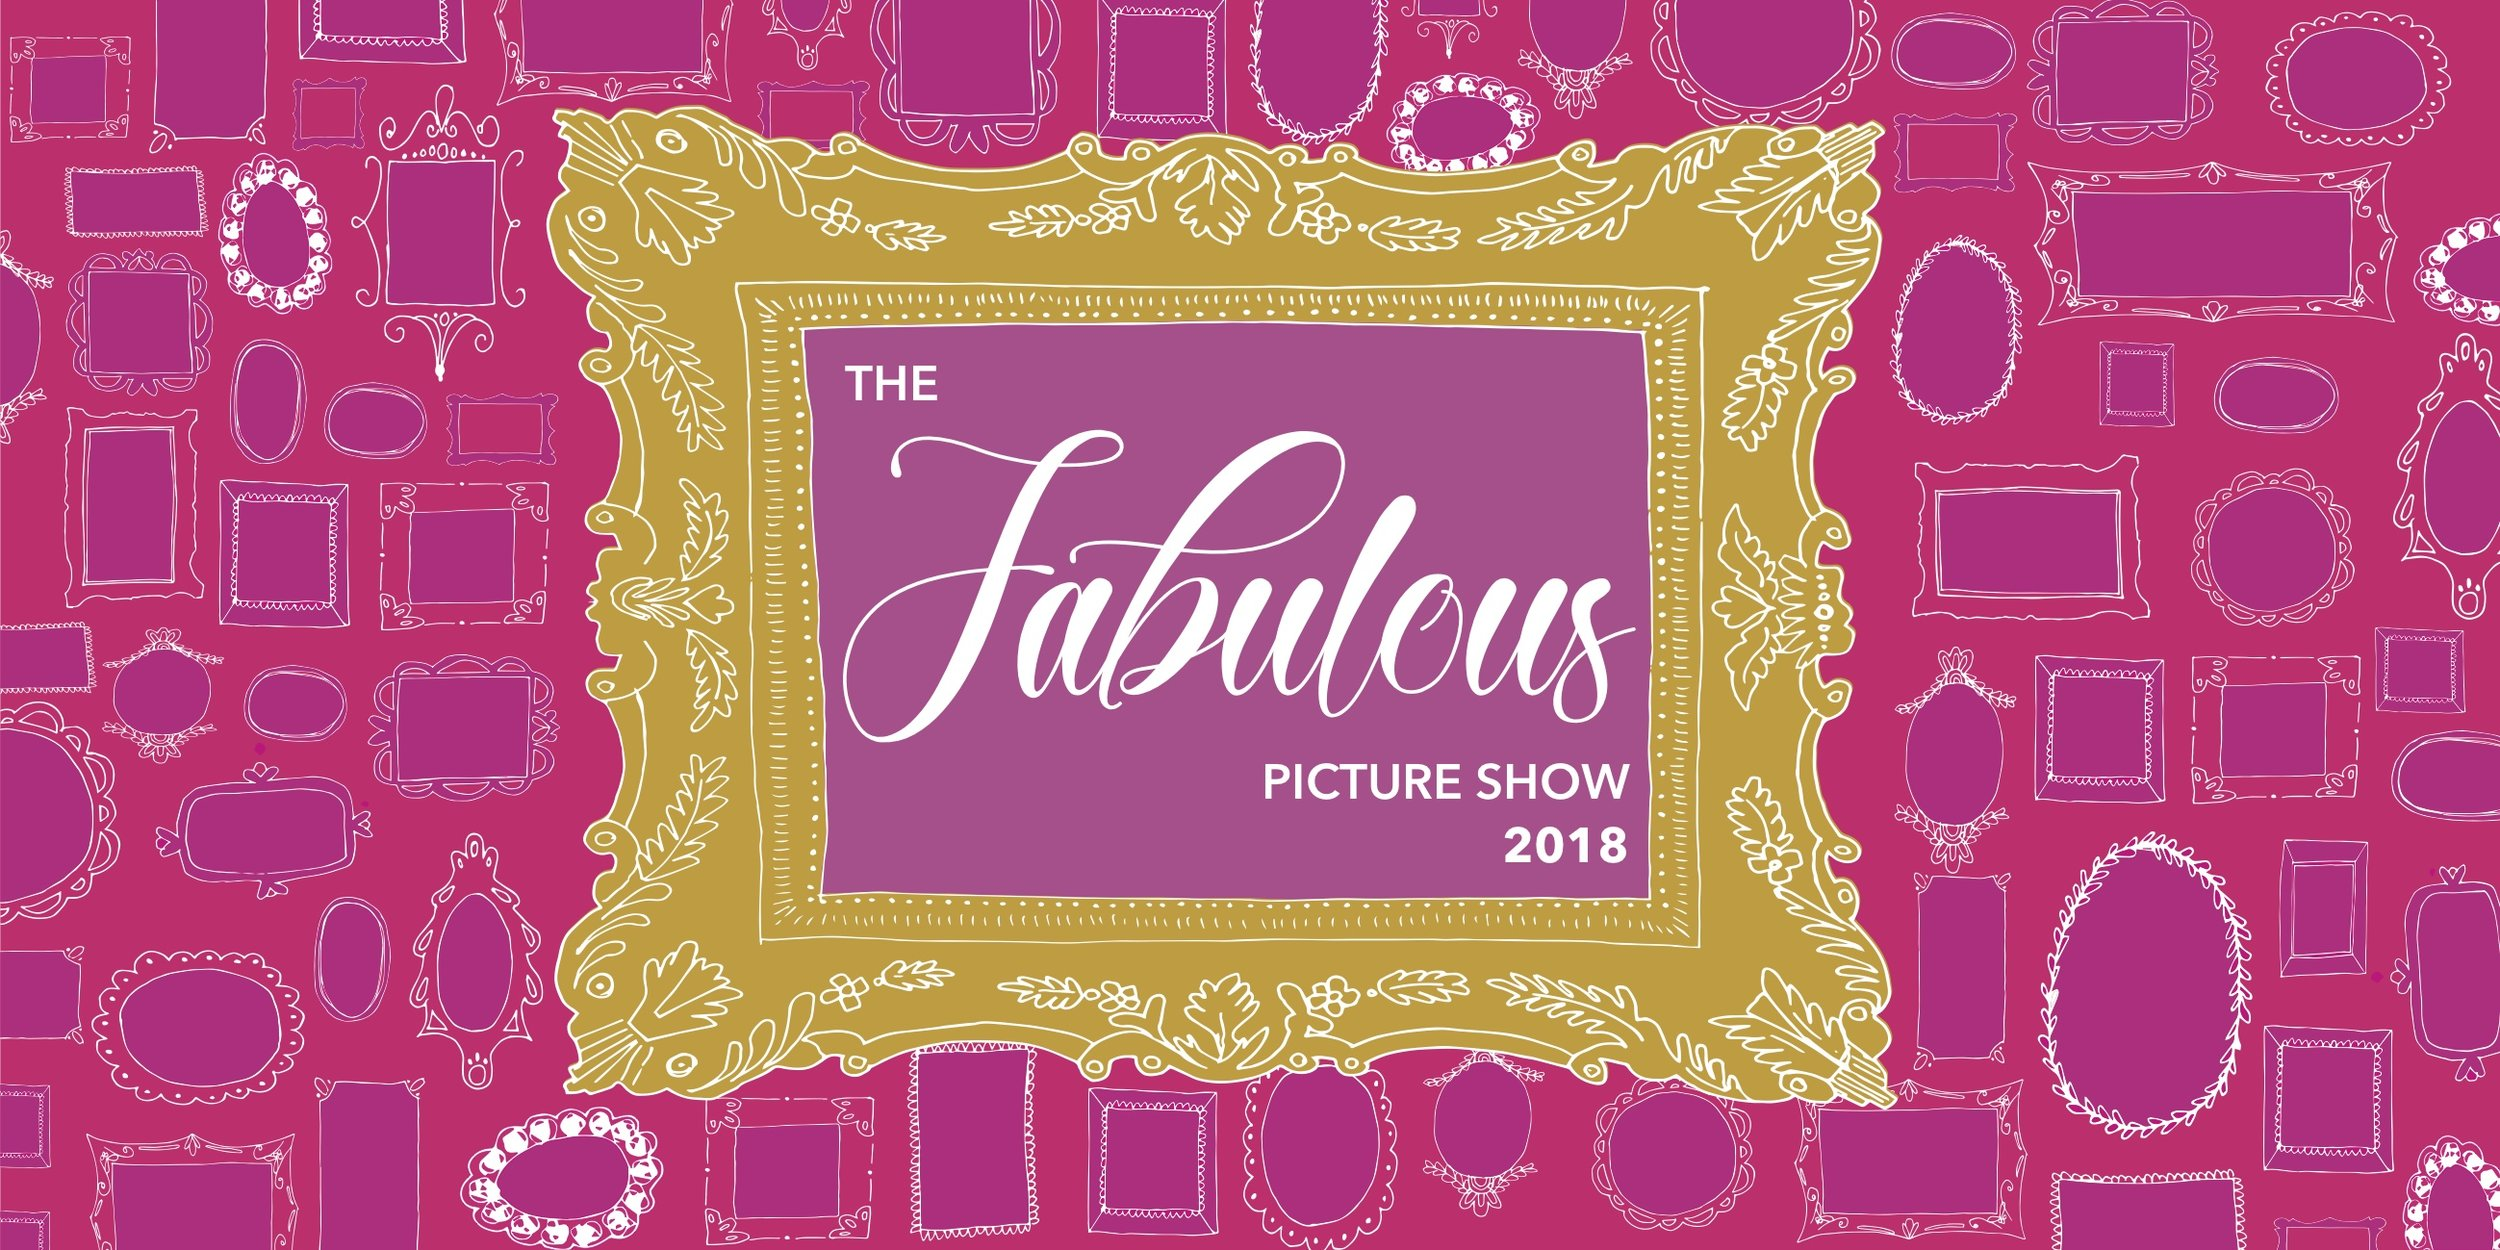 Click here for Fabulous Picture Show 2018!